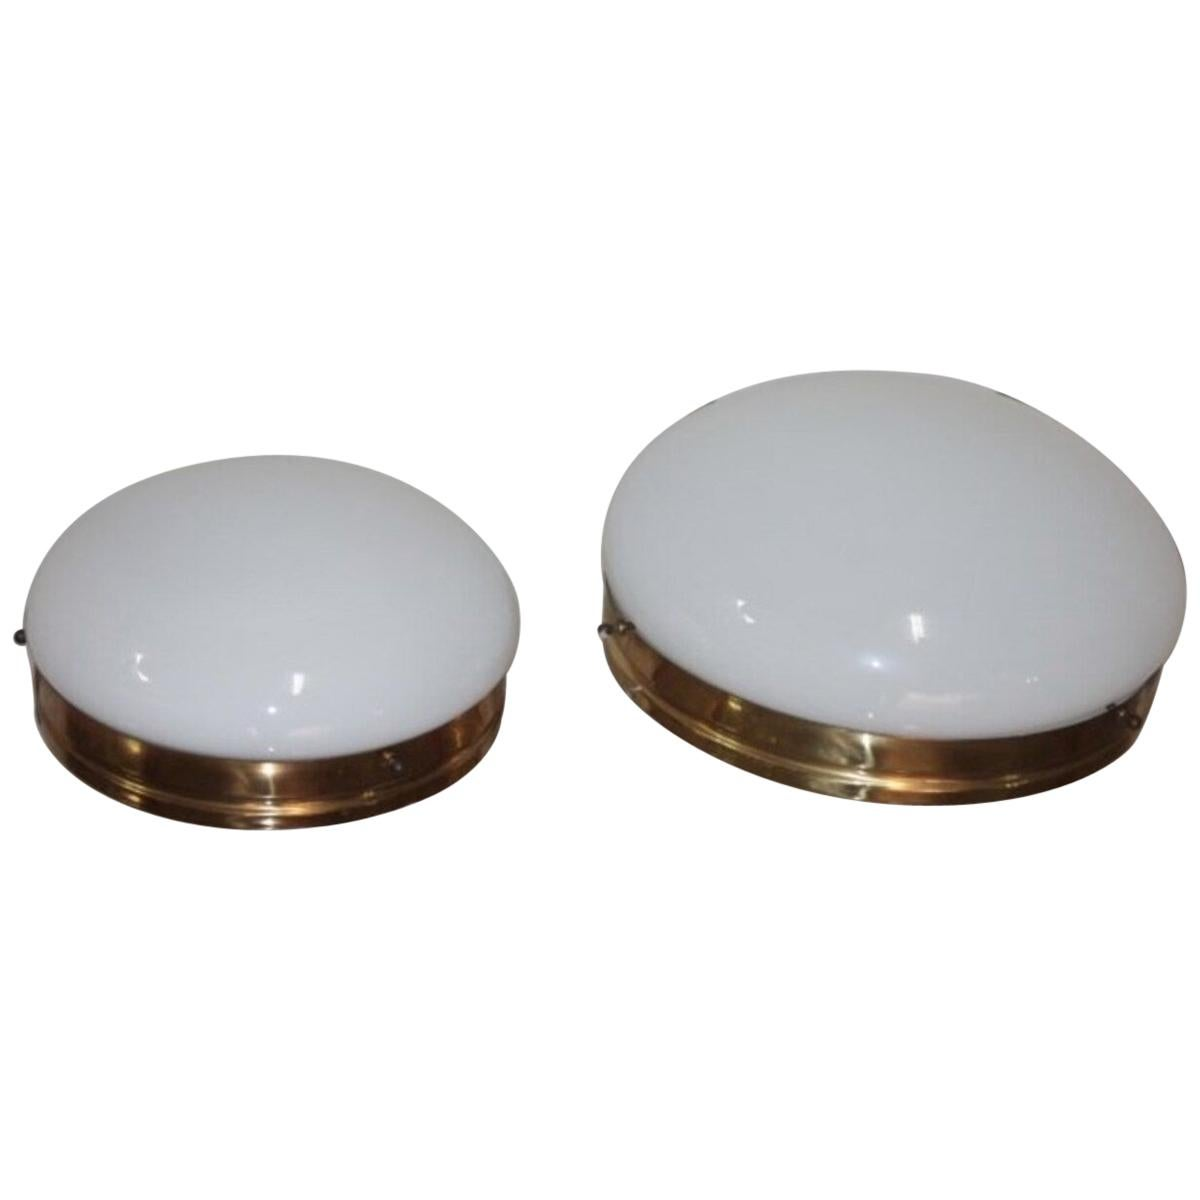 Two Wall Lights 1960s in the Style of Stilnovo